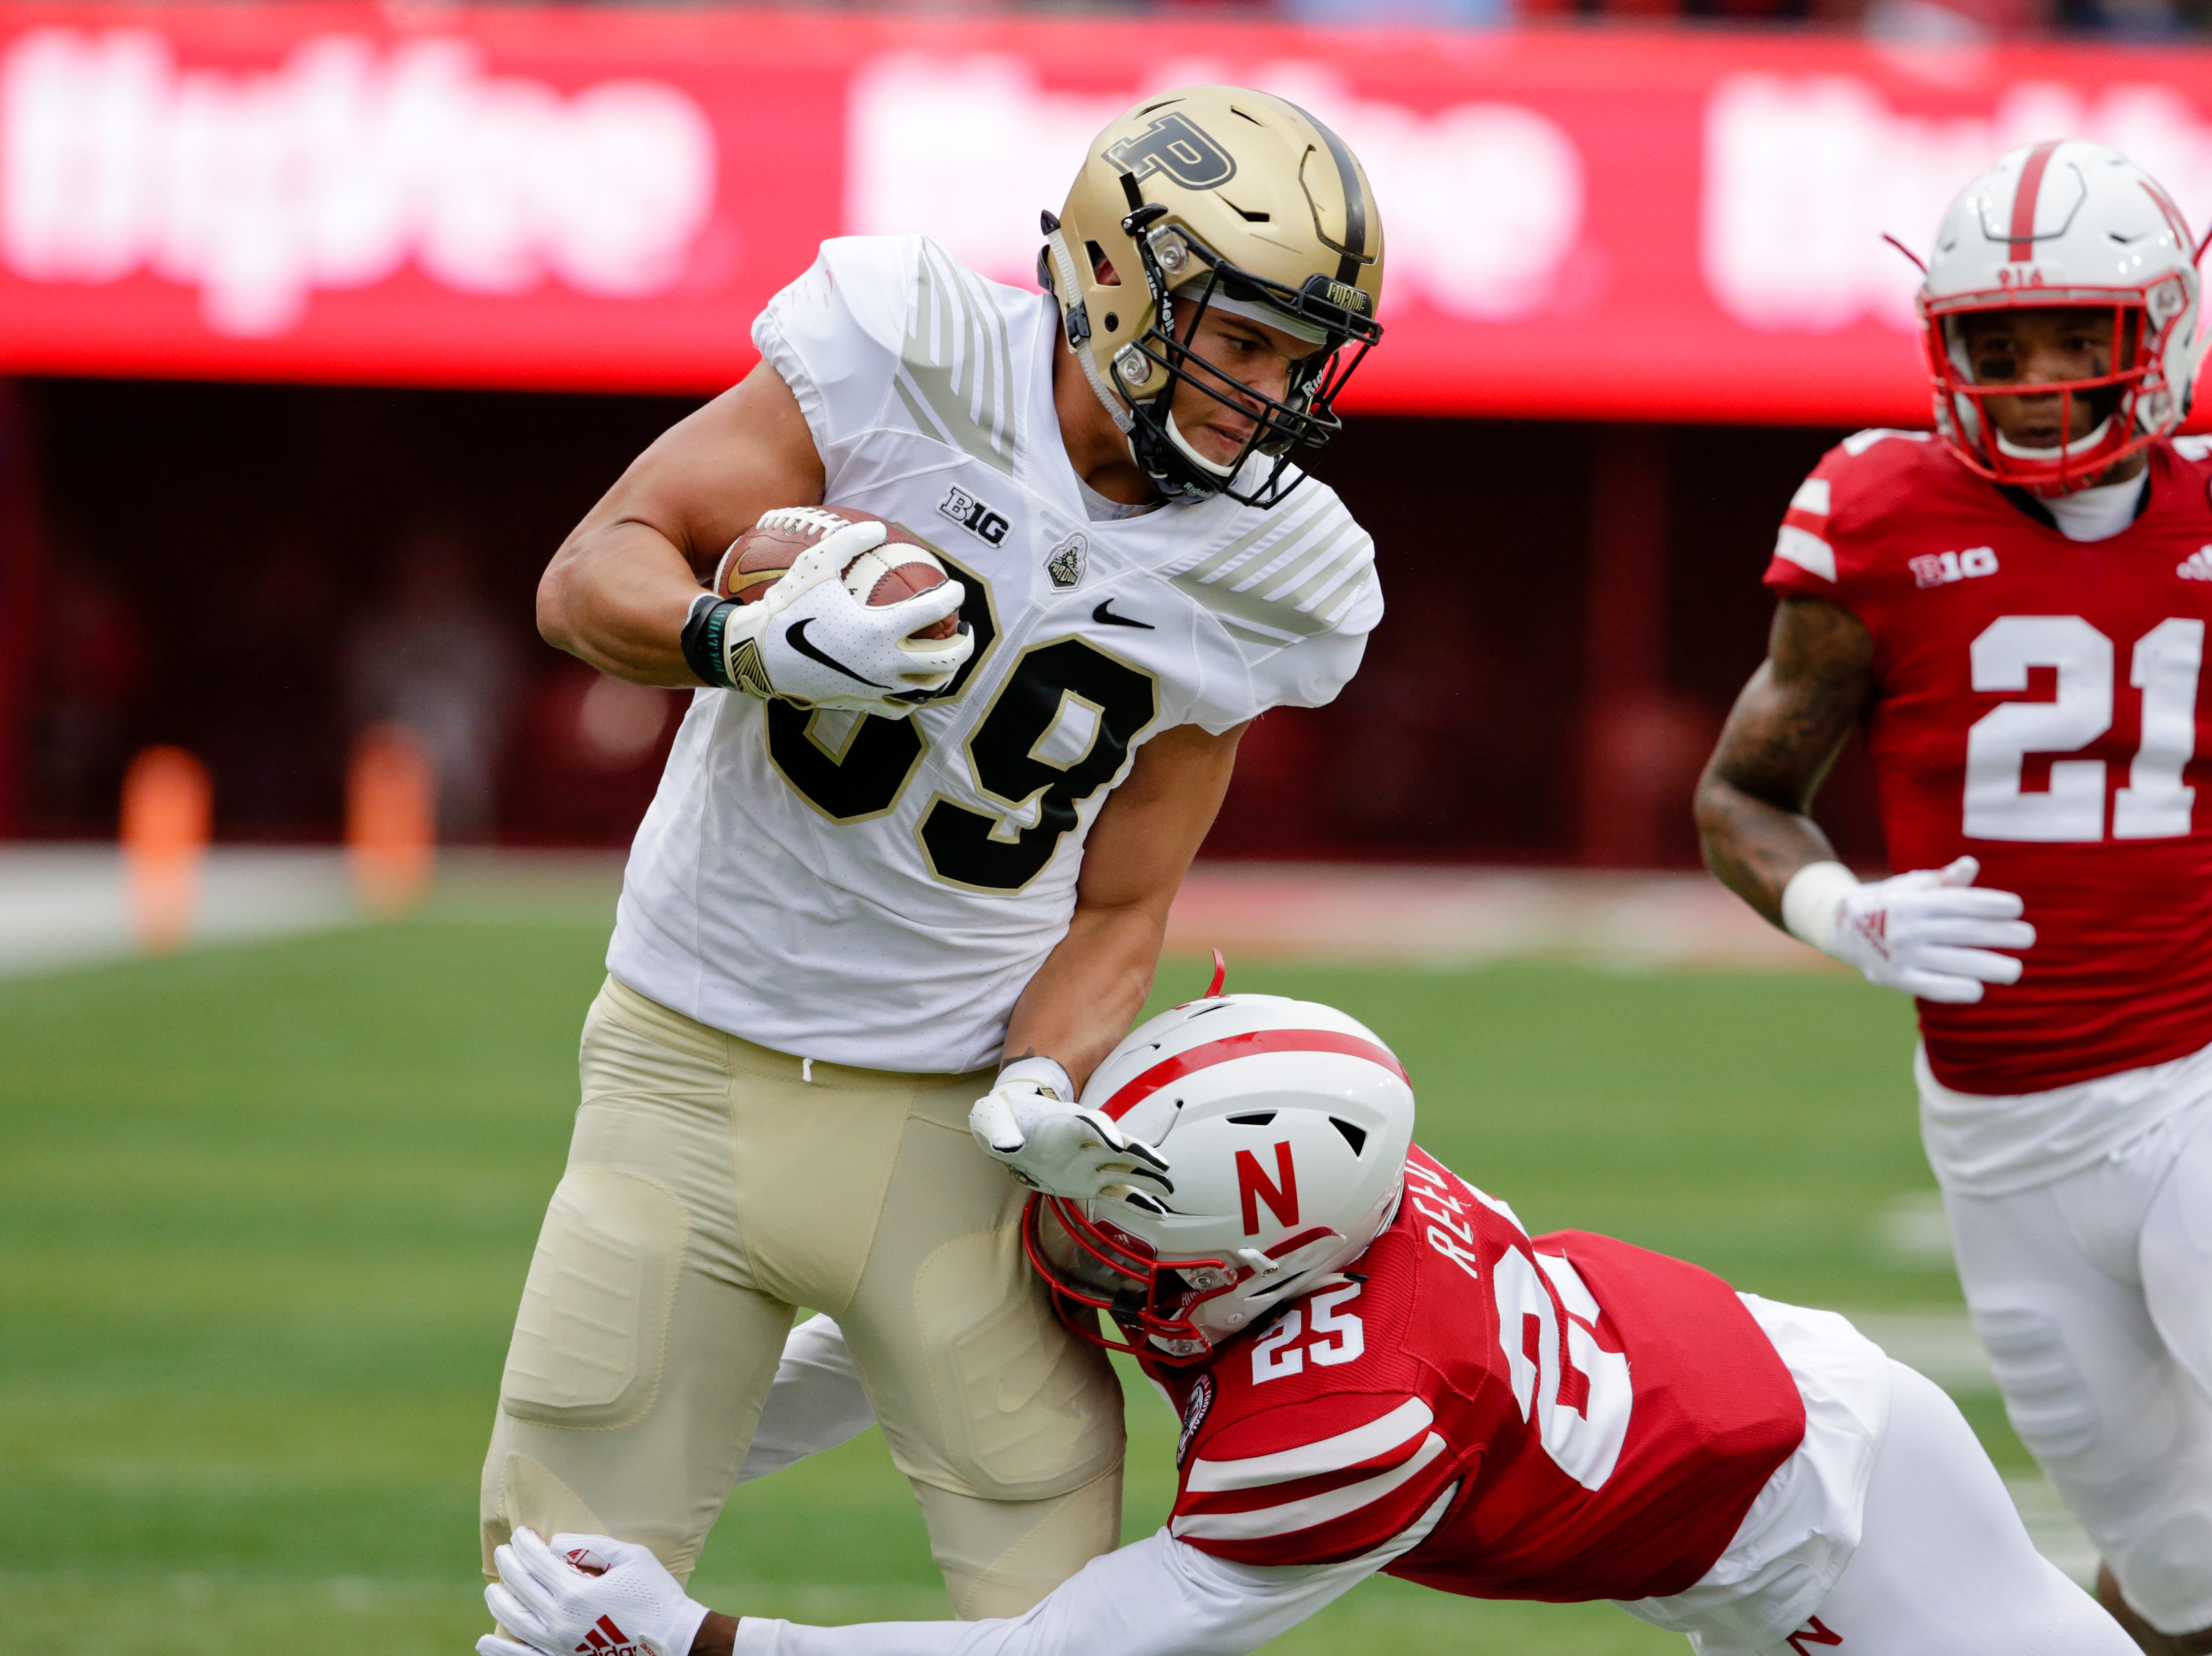 Purdue tight end Brycen Hopkins (89) is tackled by Nebraska defensive back Antonio Reed (25) during the first half of an NCAA college football game in Lincoln, Neb., Saturday, Sept. 29, 2018. (AP Photo/Nati Harnik)